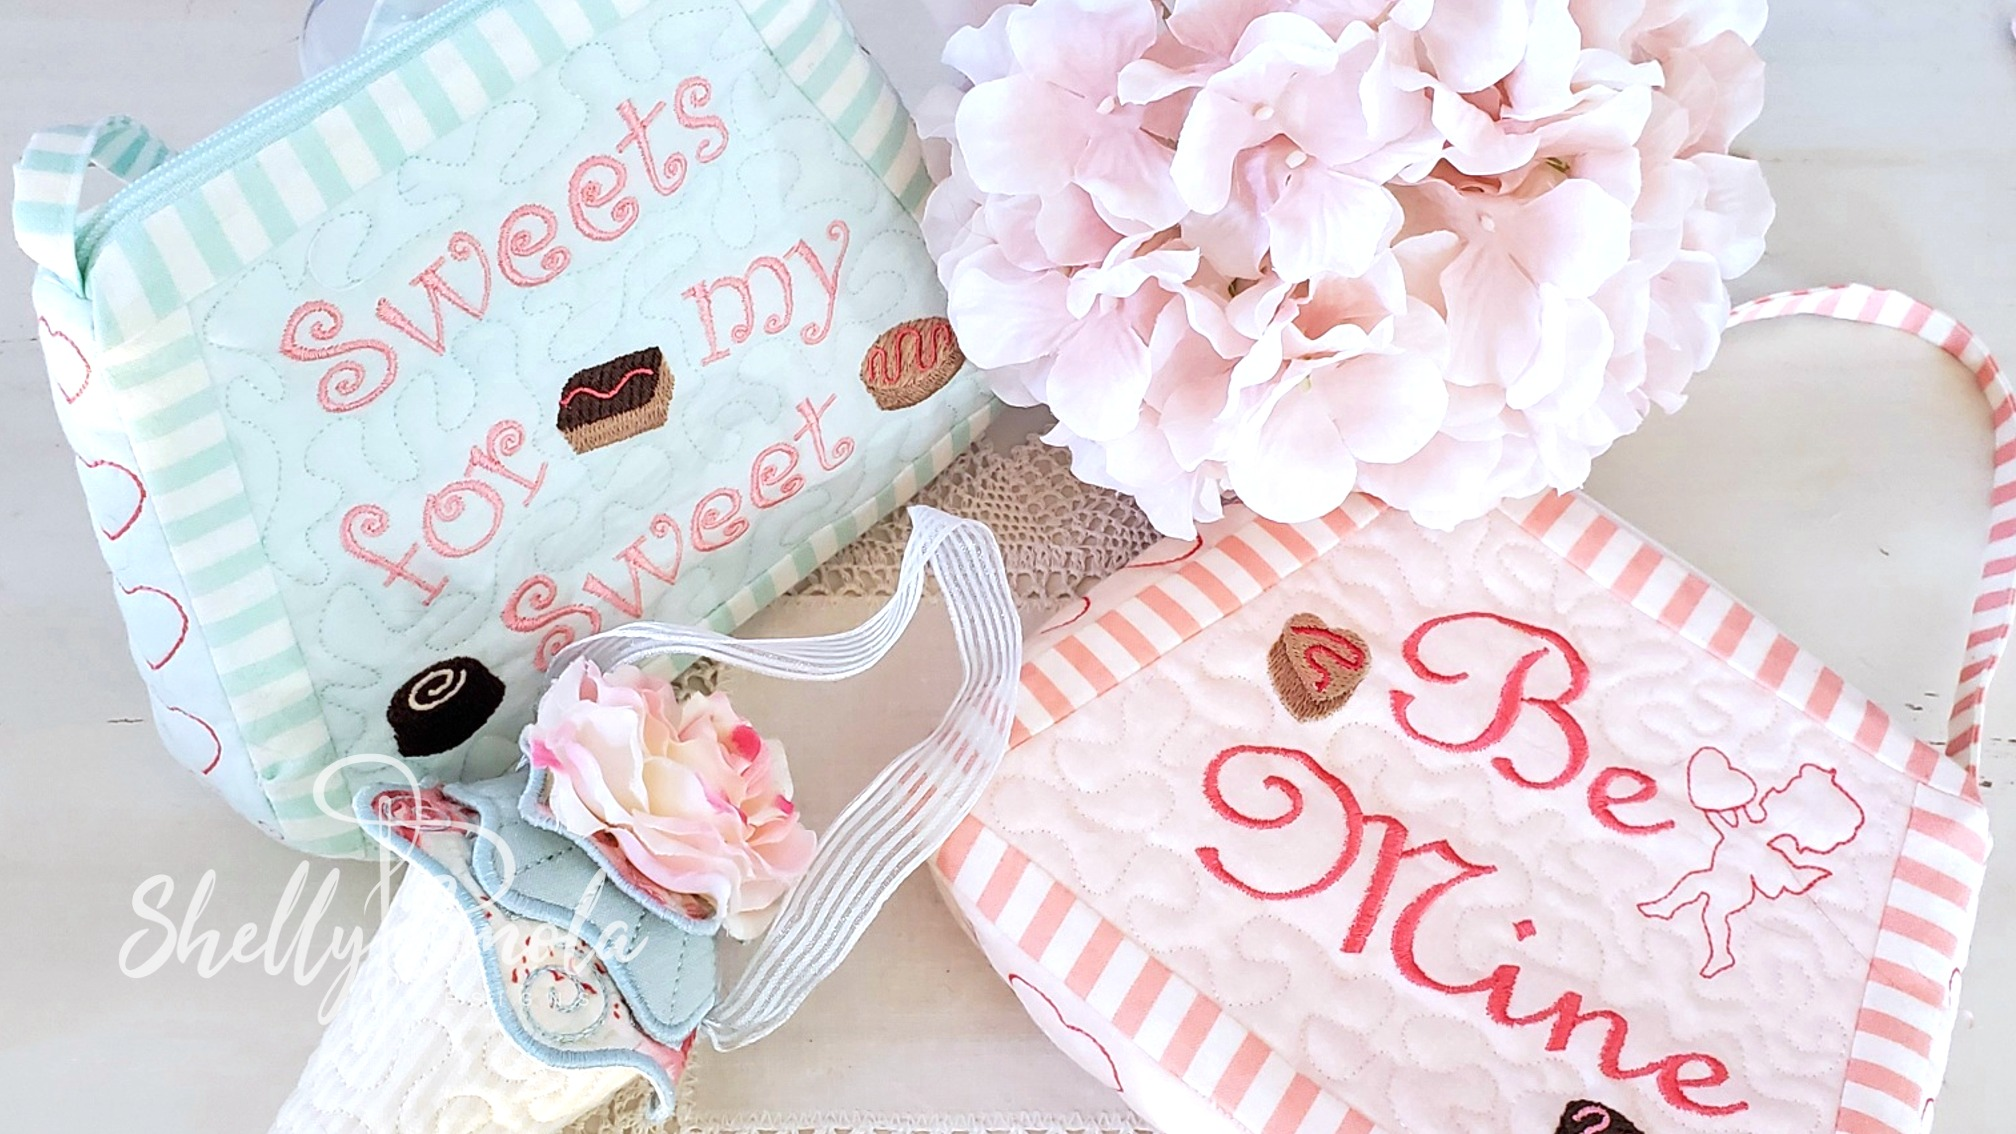 Candy Clutches by Shelly Smola